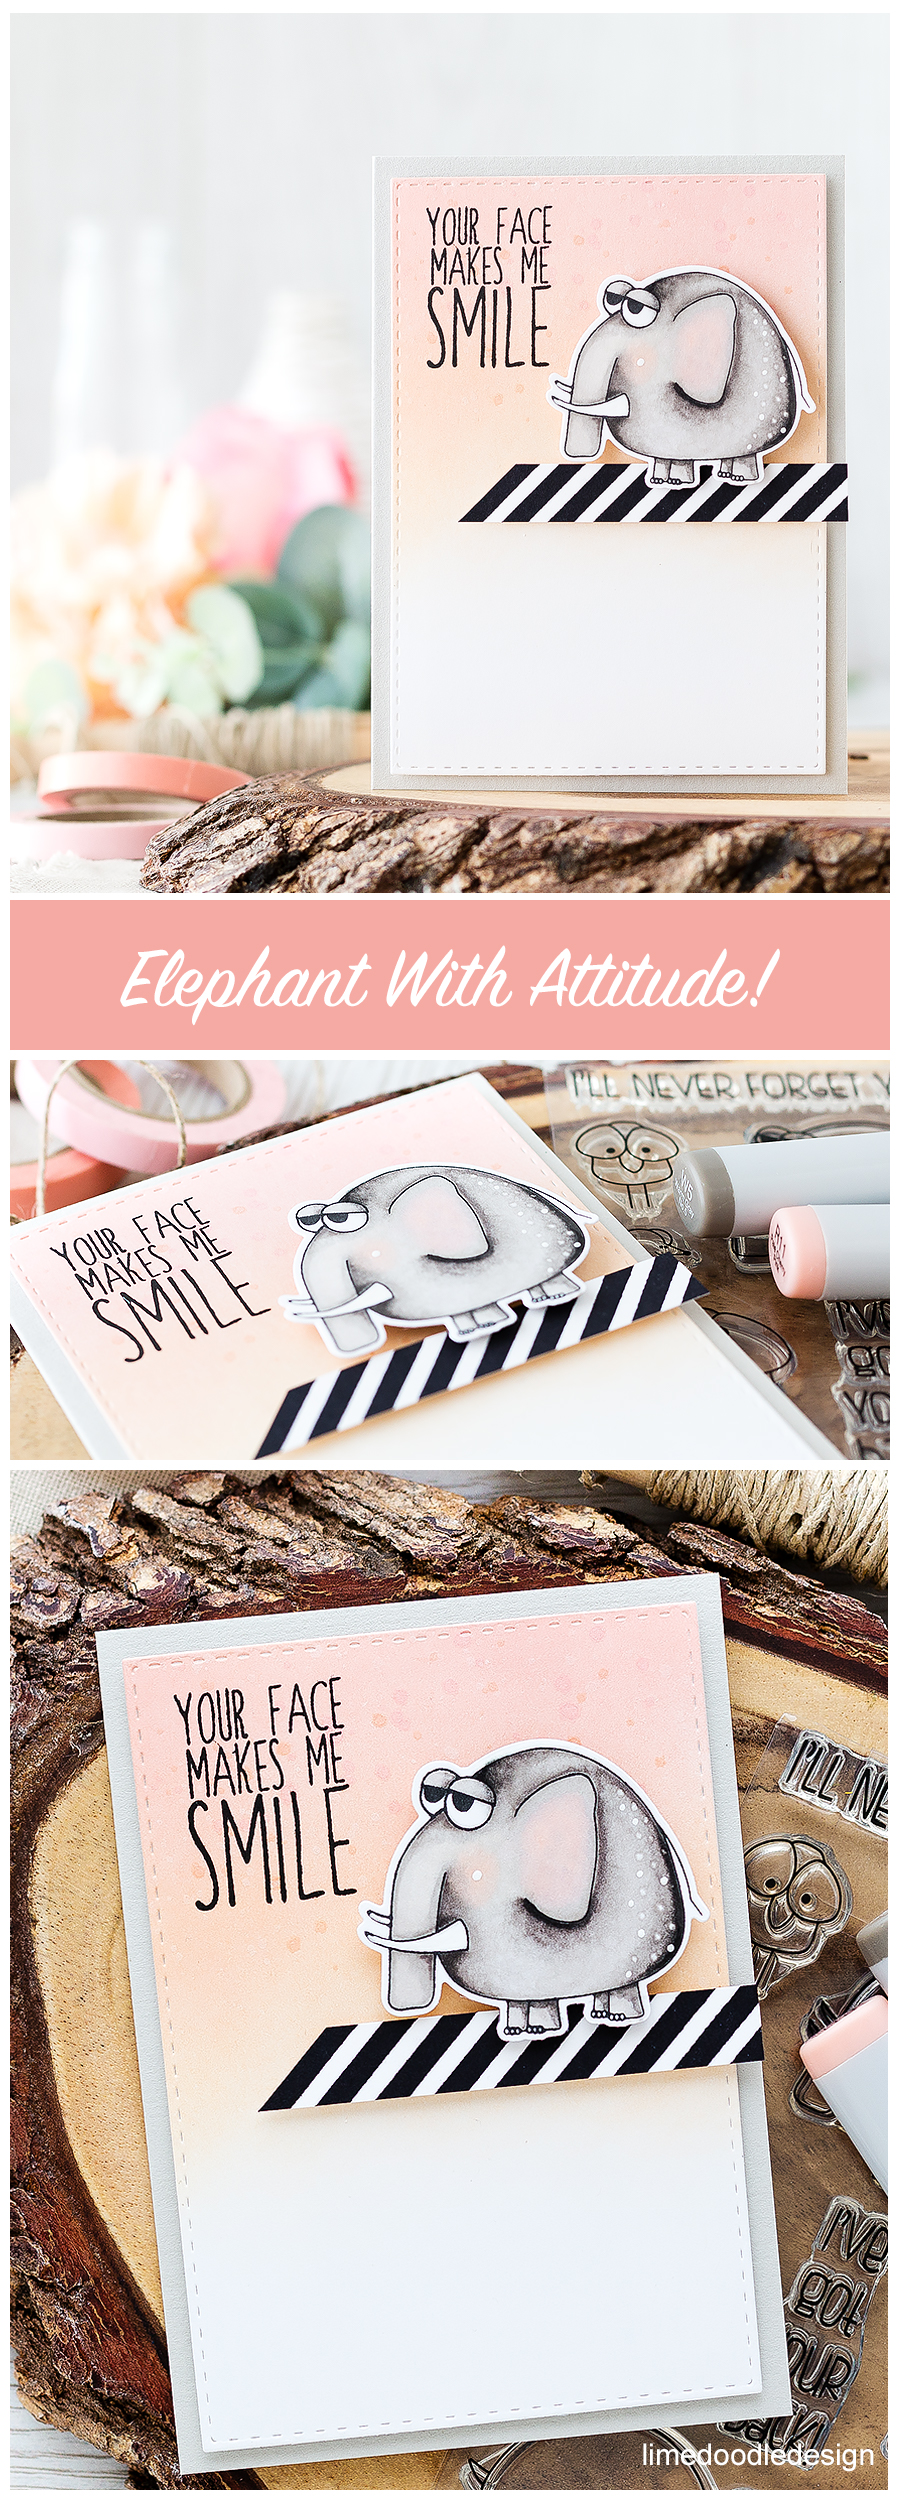 Elephant with attitude! To find out more about this card click on the following link: http://limedoodledesign.com/2016/08/elephant-with-attitude/